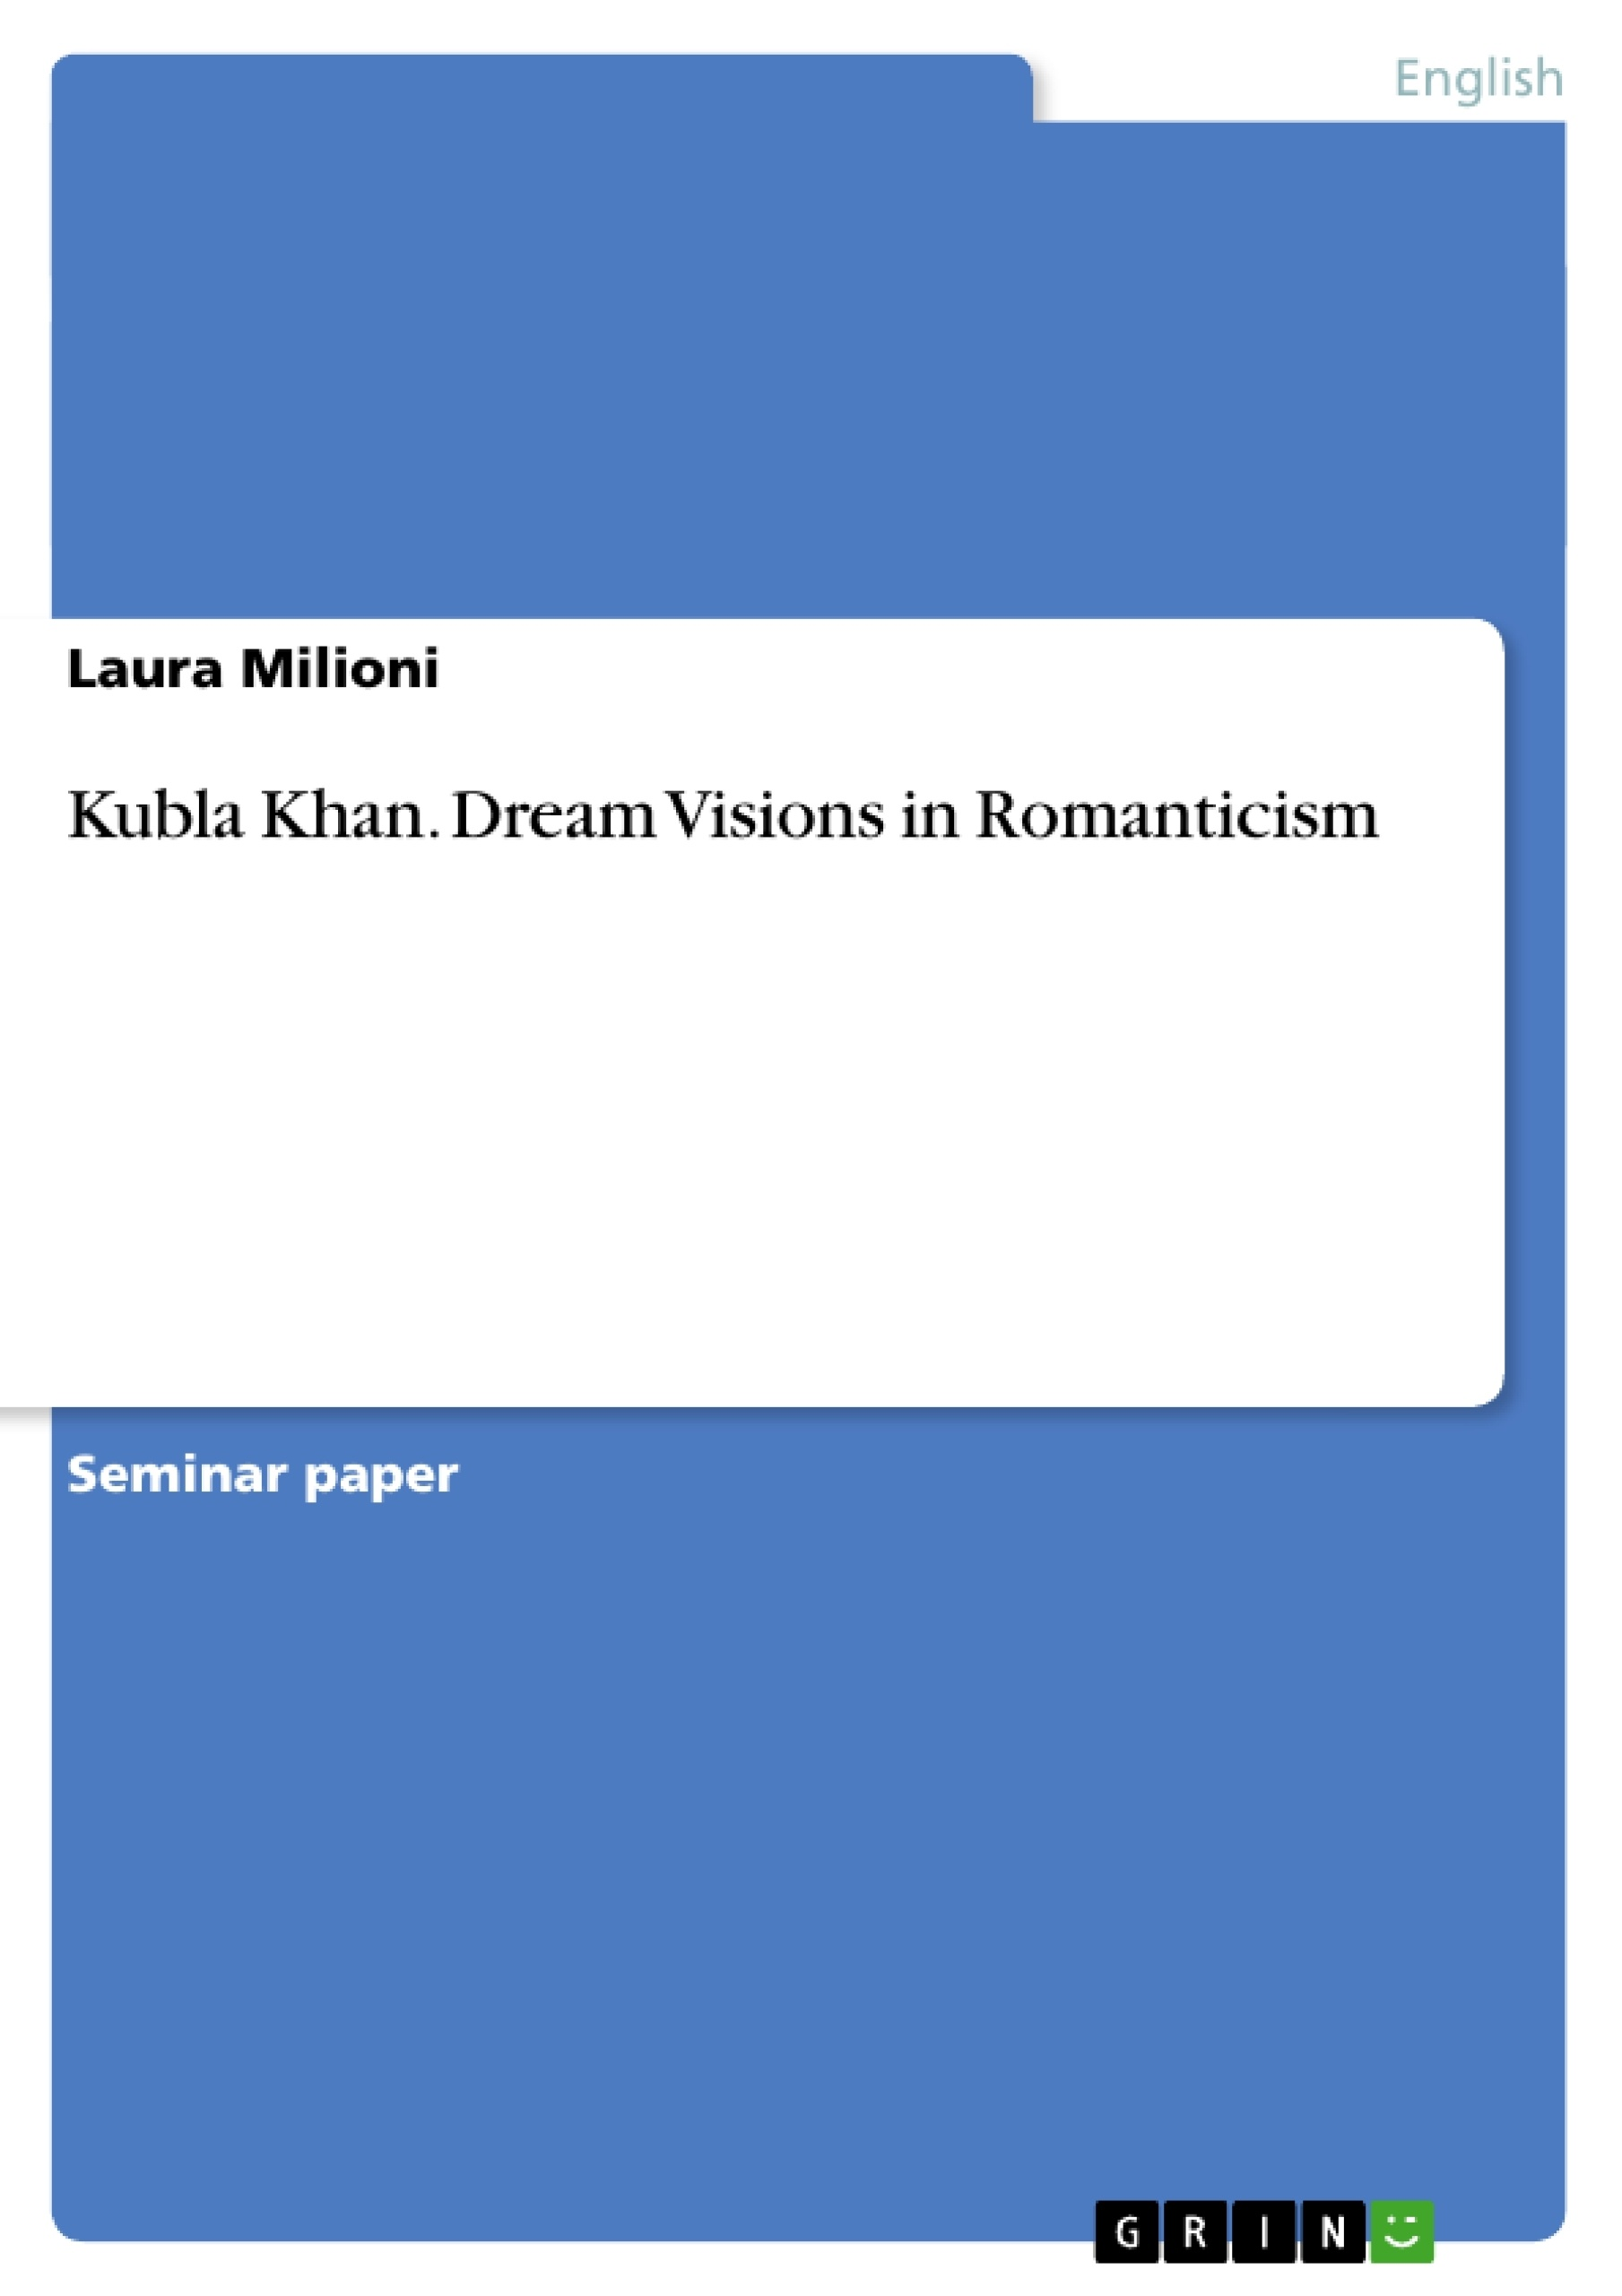 r ticism essay kubla khan dream visions in r ticism publish  kubla khan dream visions in r ticism publish your master s dream visions in r ticism